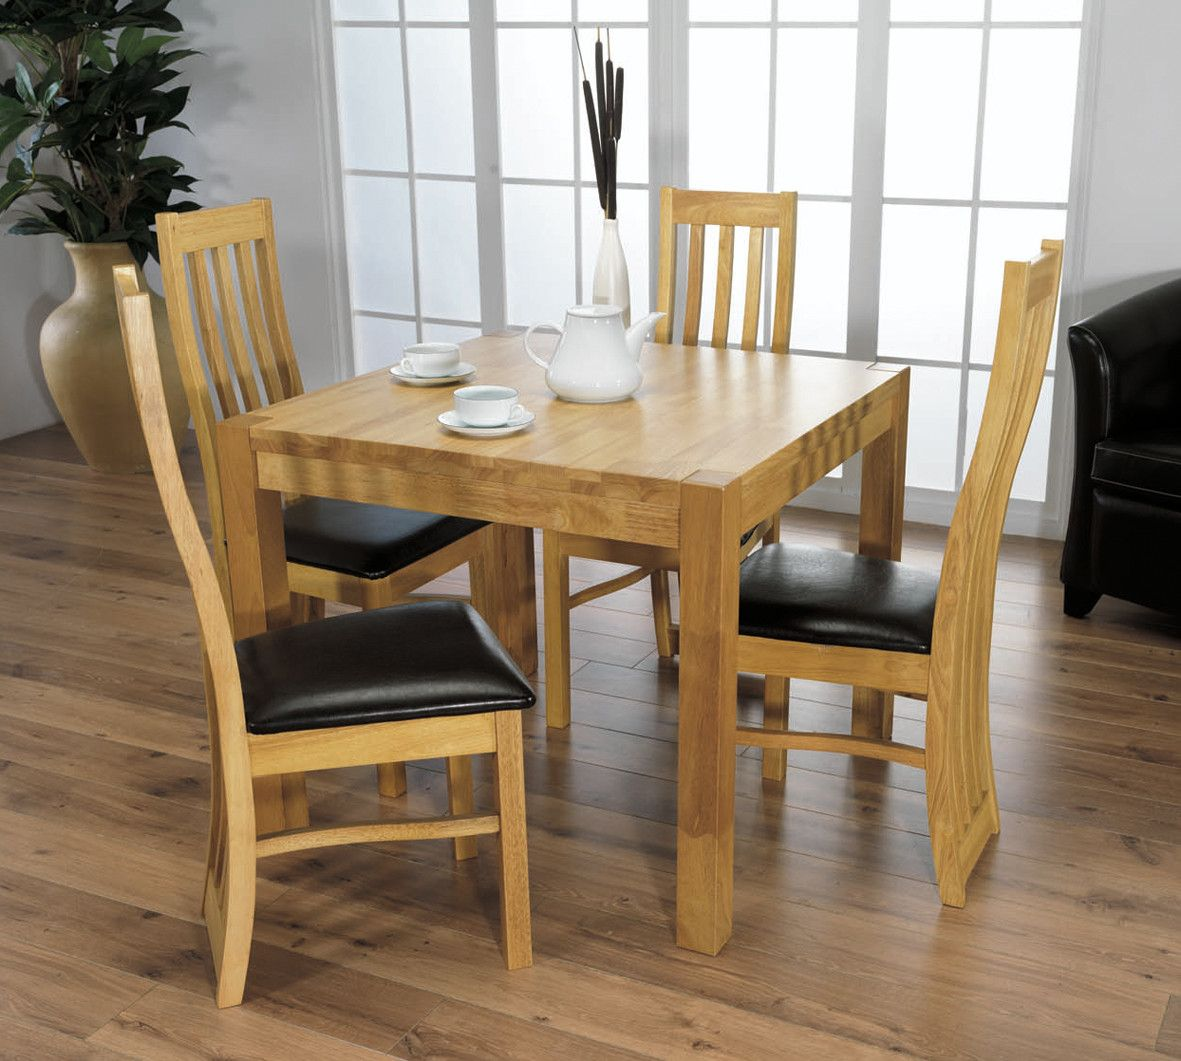 2019 small square dining table and chairs elite modern furniture check more at http